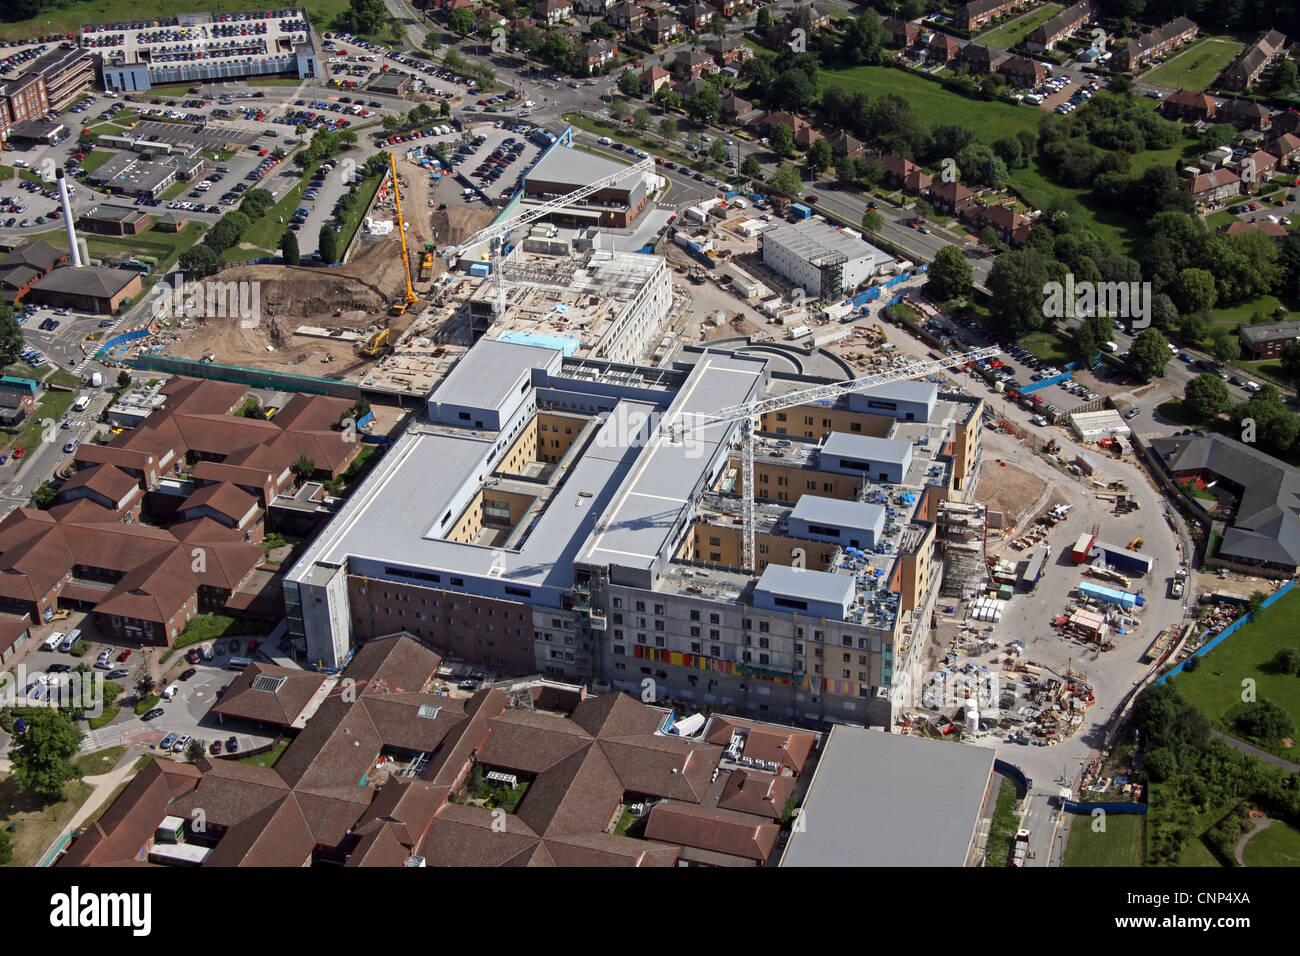 aerial view of a hospital under construction, University Hospital of North Staffordshire - Stock Image